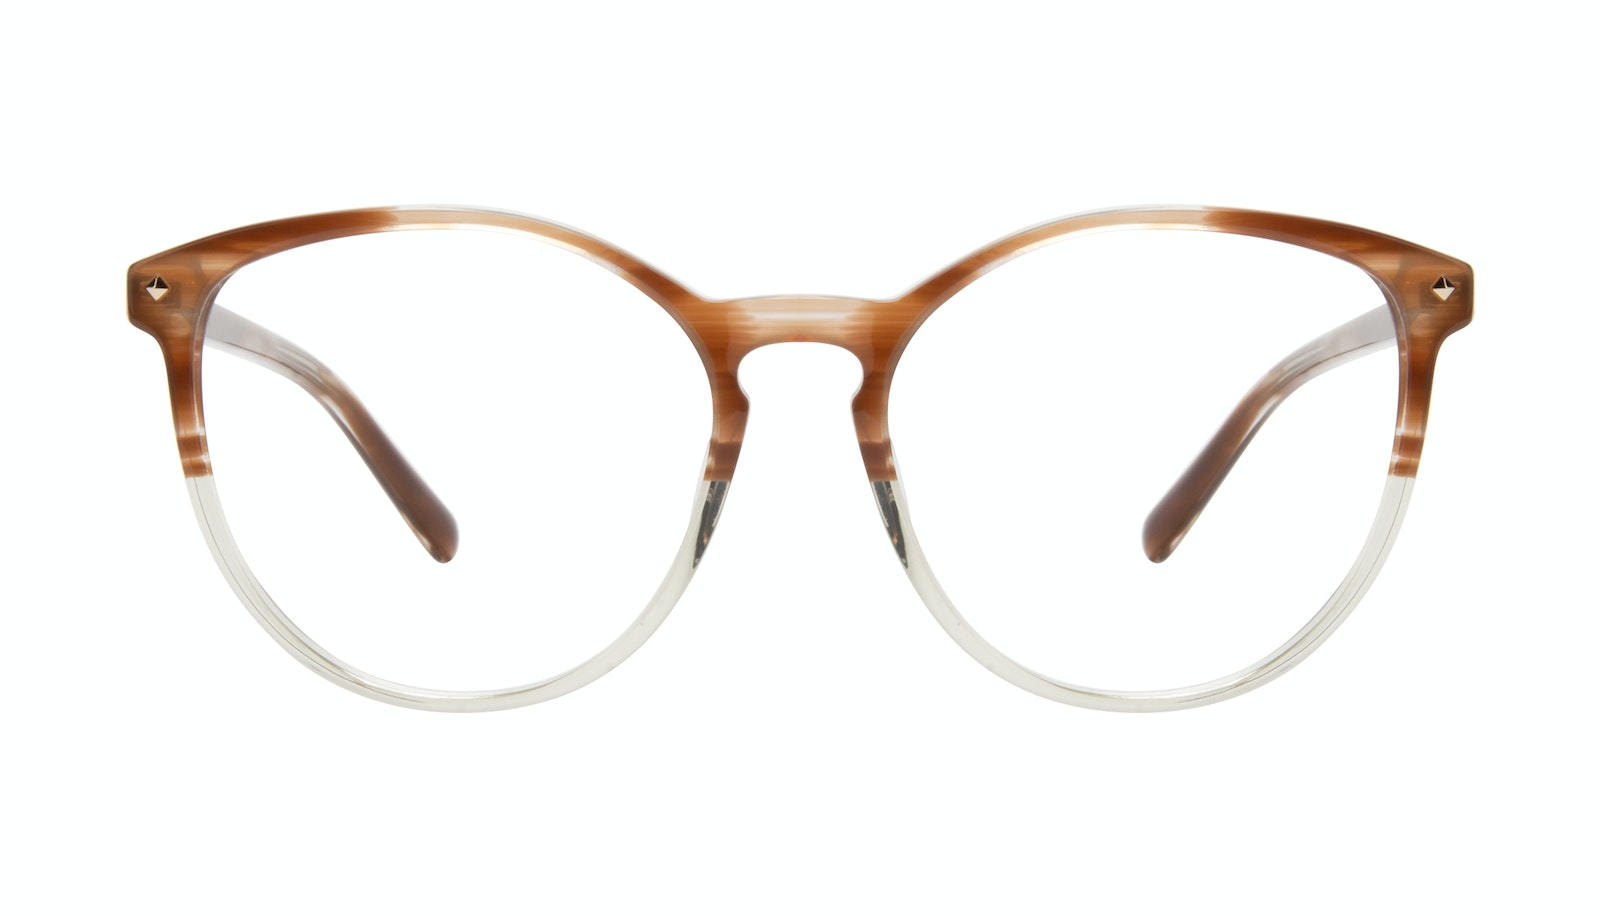 Affordable Fashion Glasses Round Eyeglasses Women Viva Tan